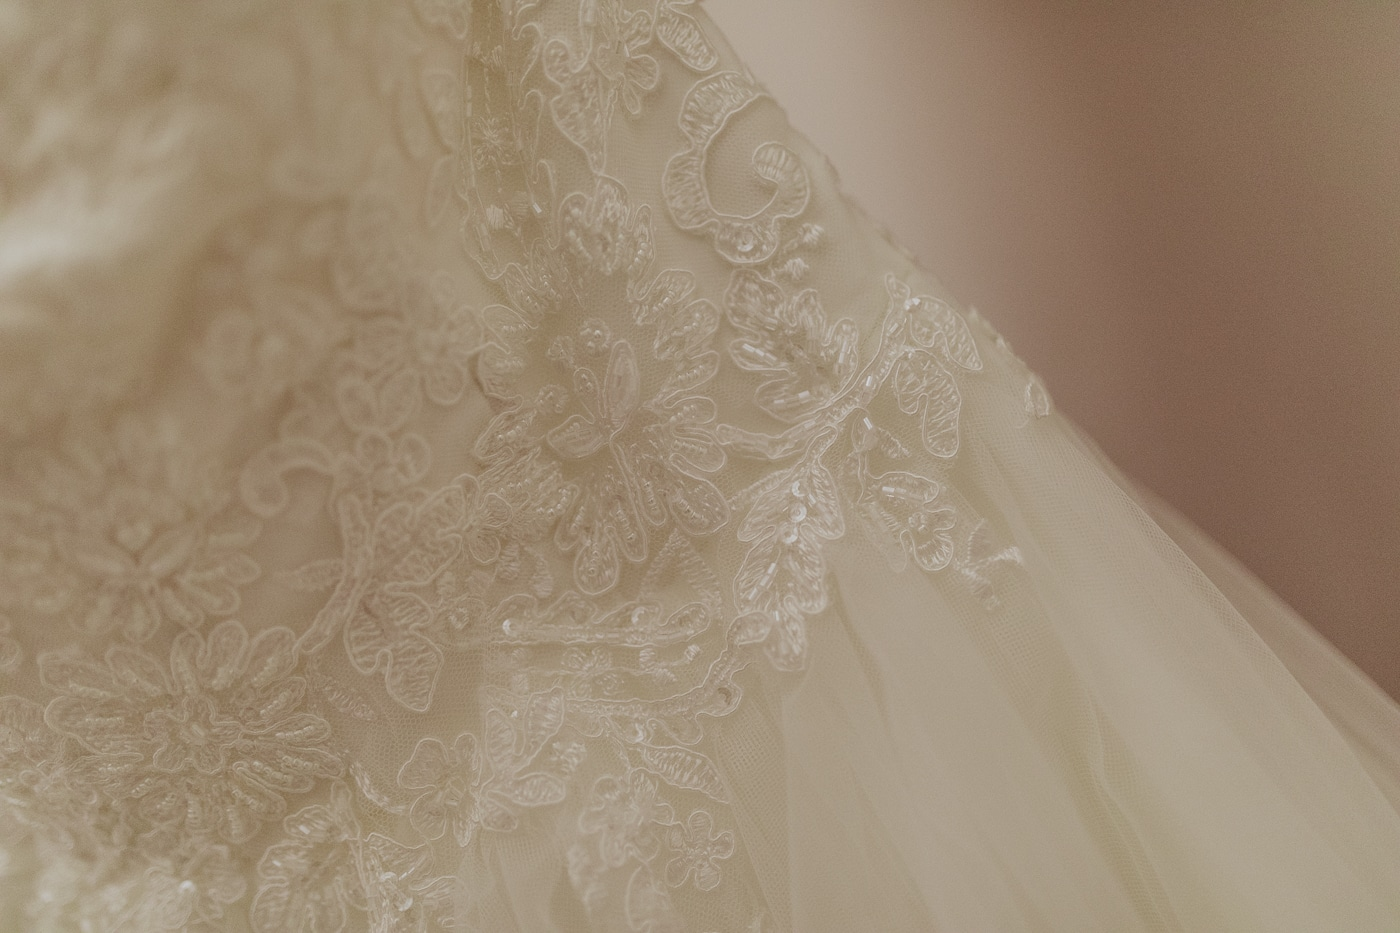 Close up of wedding dress with detailing and tulle